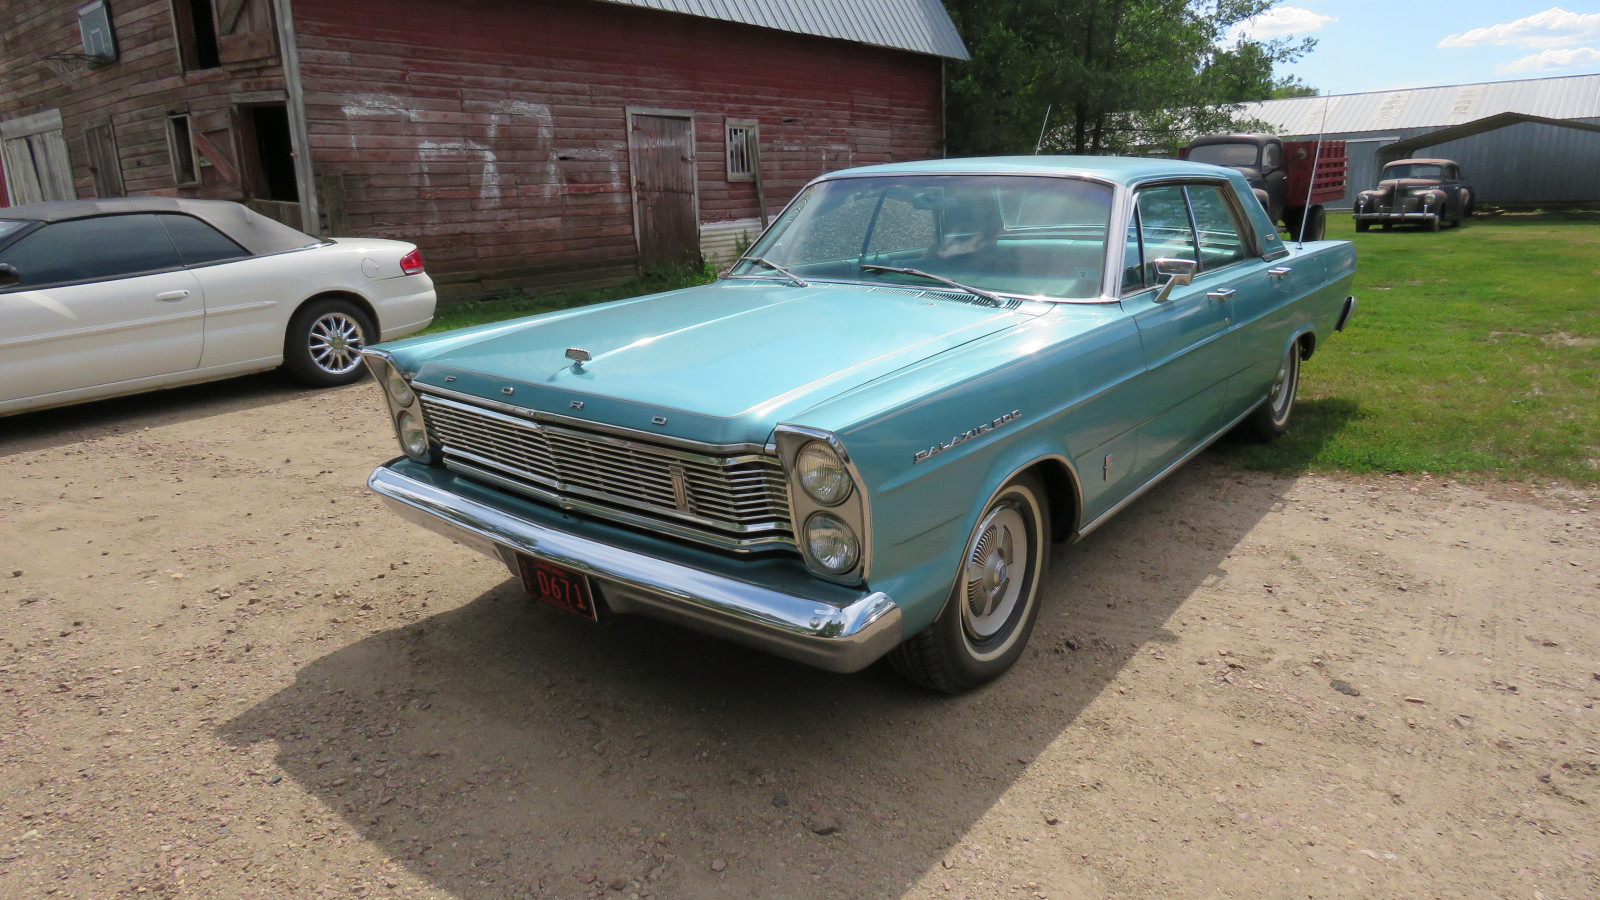 1965 Ford Galaxie 500 4dr HT - Image 3